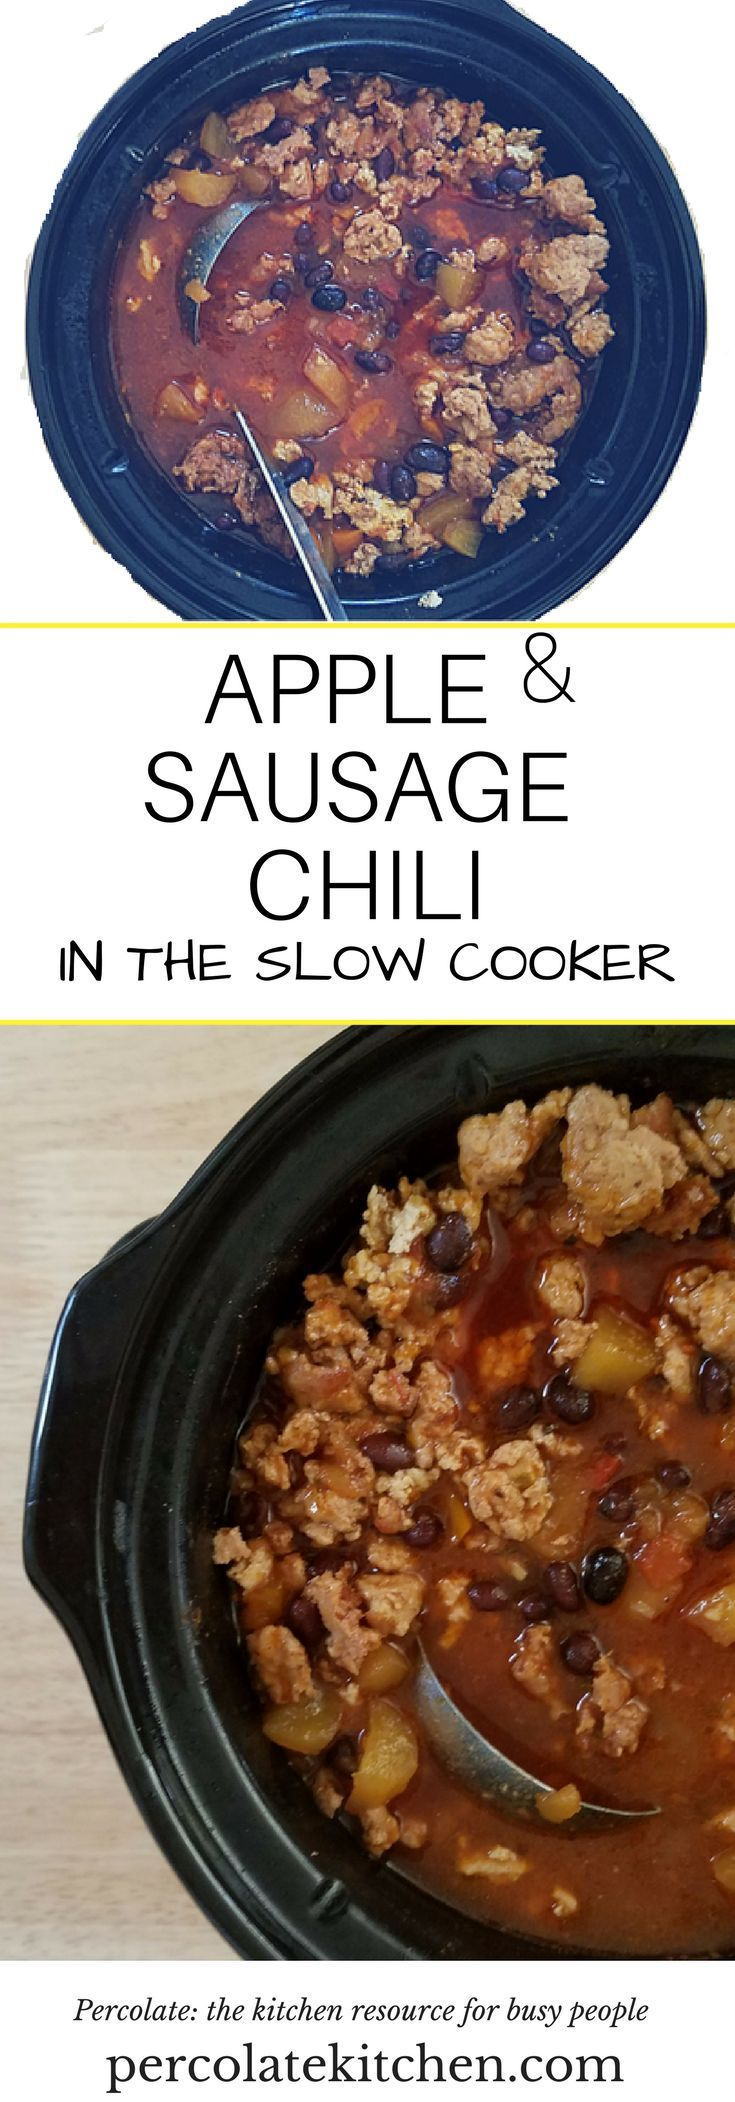 This apple sausage chili made in the slow cooker deepens the flavors, with diced apple adding a subtle sweetness to the heat of the chili.